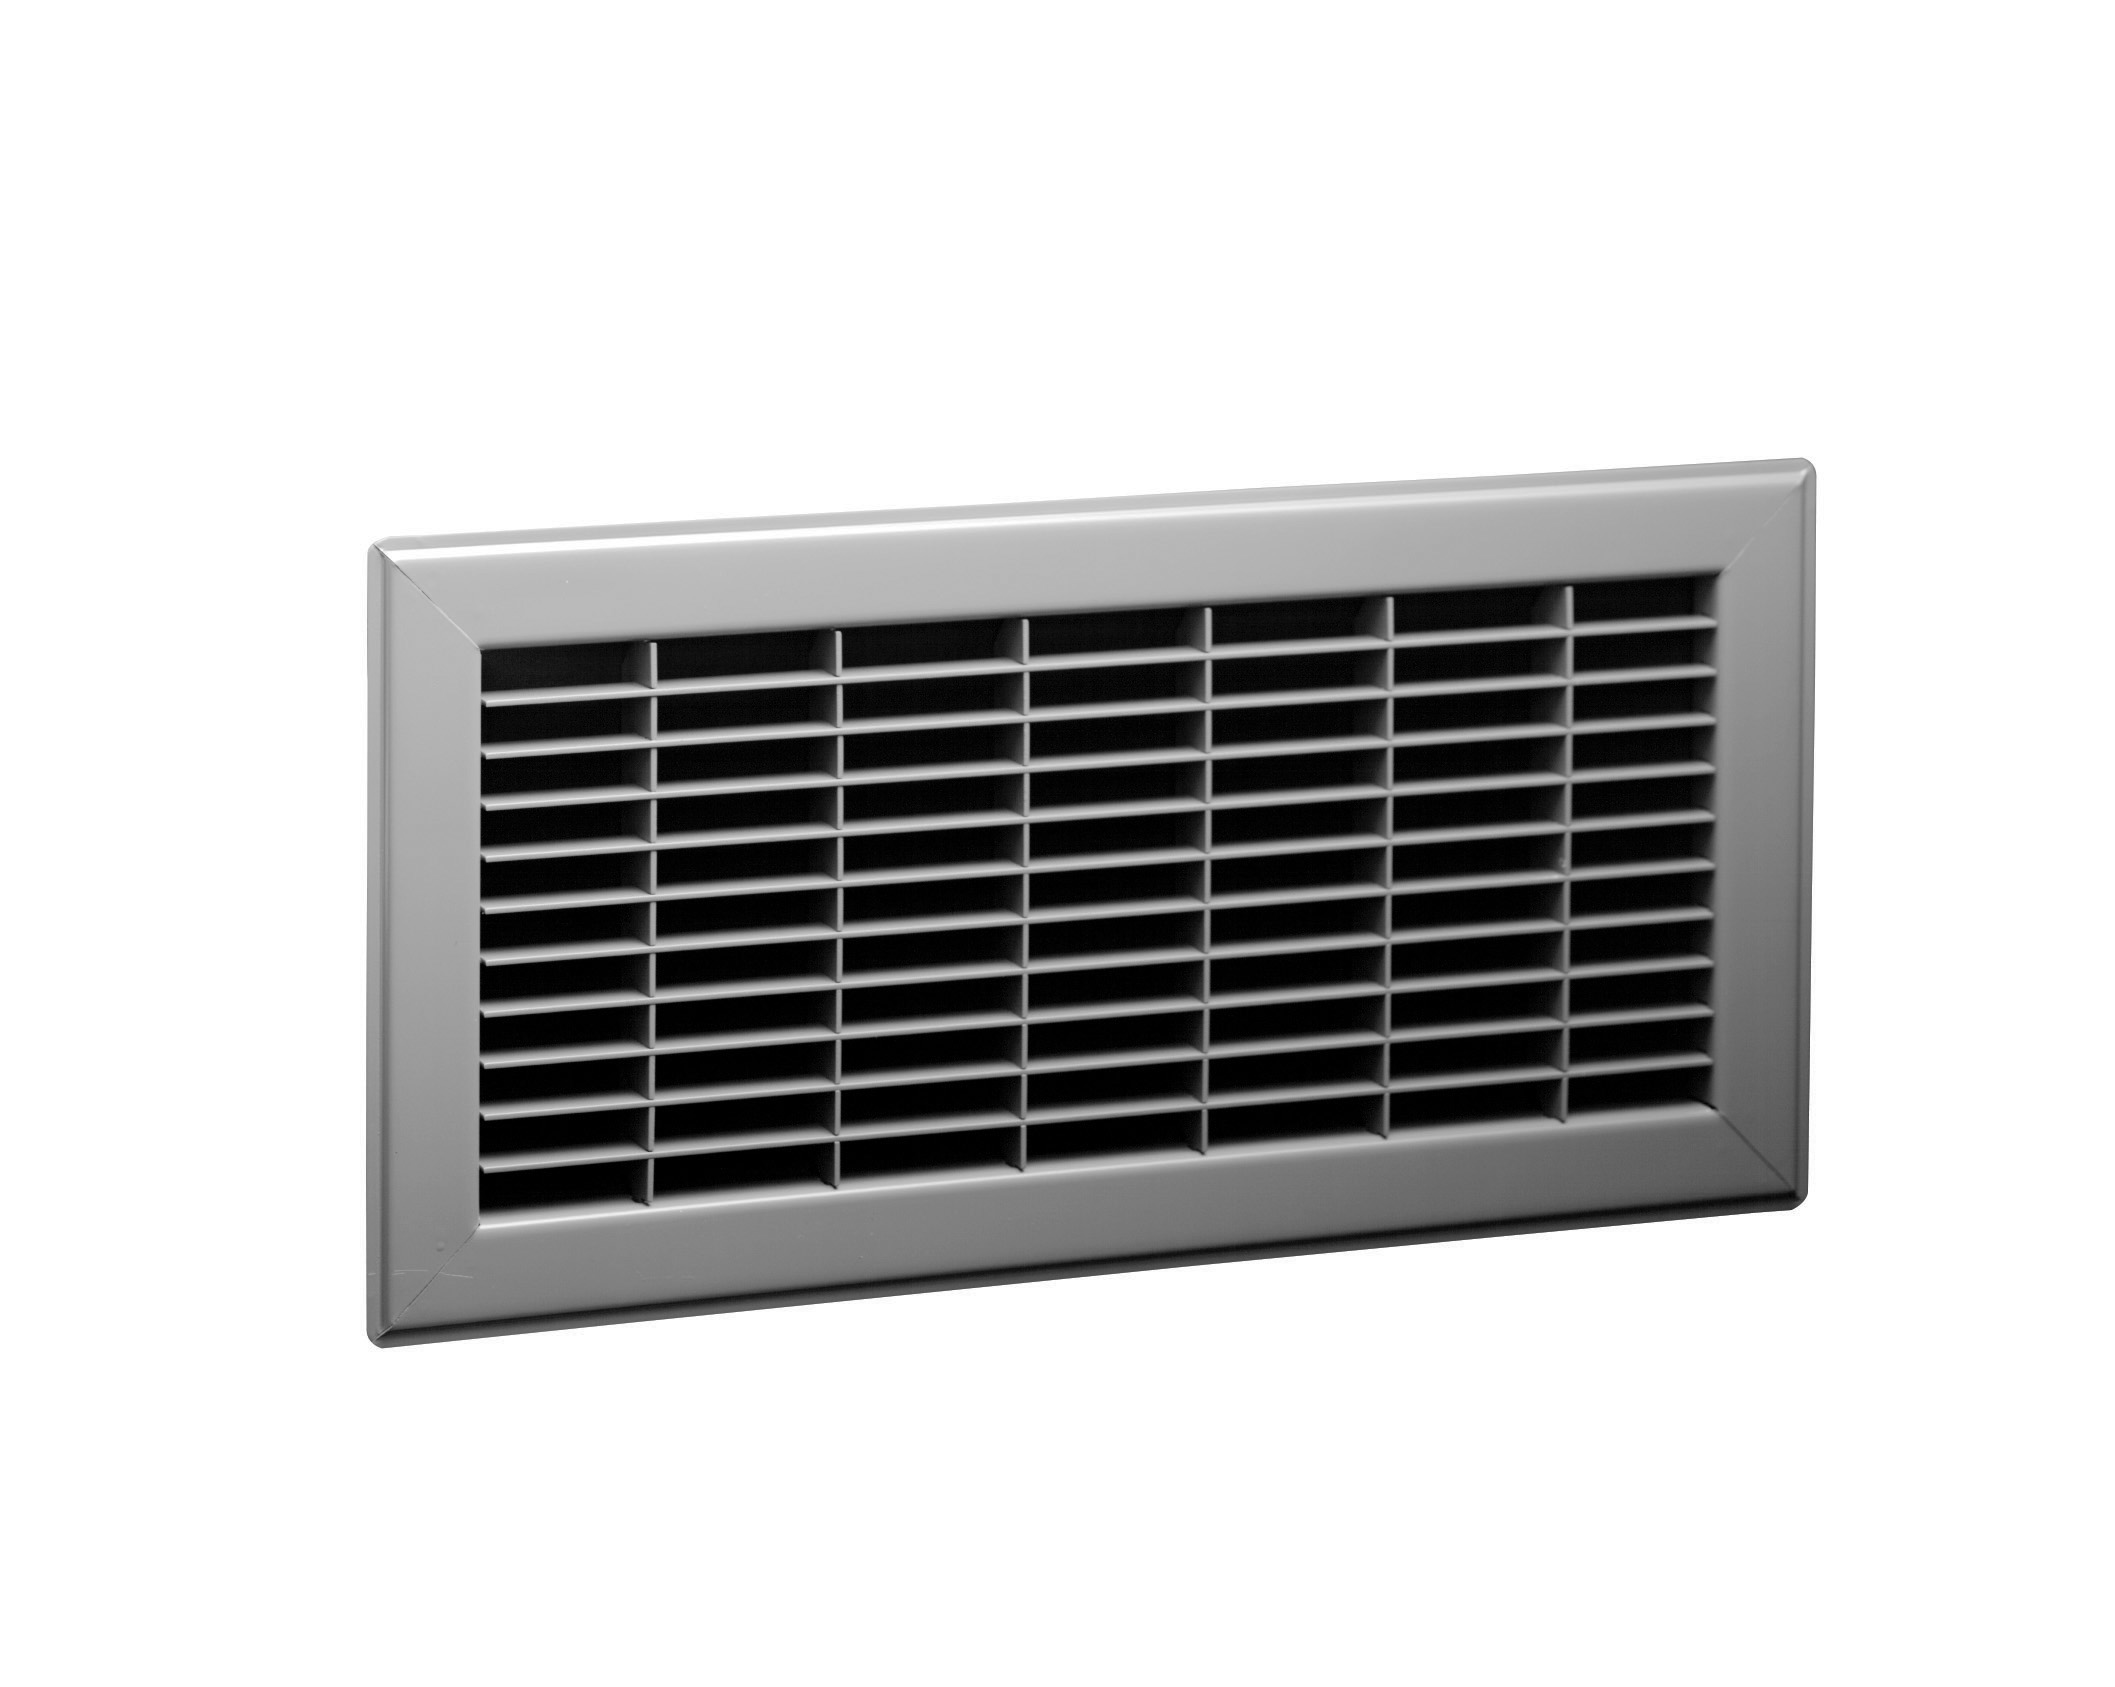 vent from variety itm air ceilings hold floor magnetic ceiling and covers have magnets deflector deflectors cover in heating shapes registers king register all a wall new them for conditioner to two frost strong sizes of heat